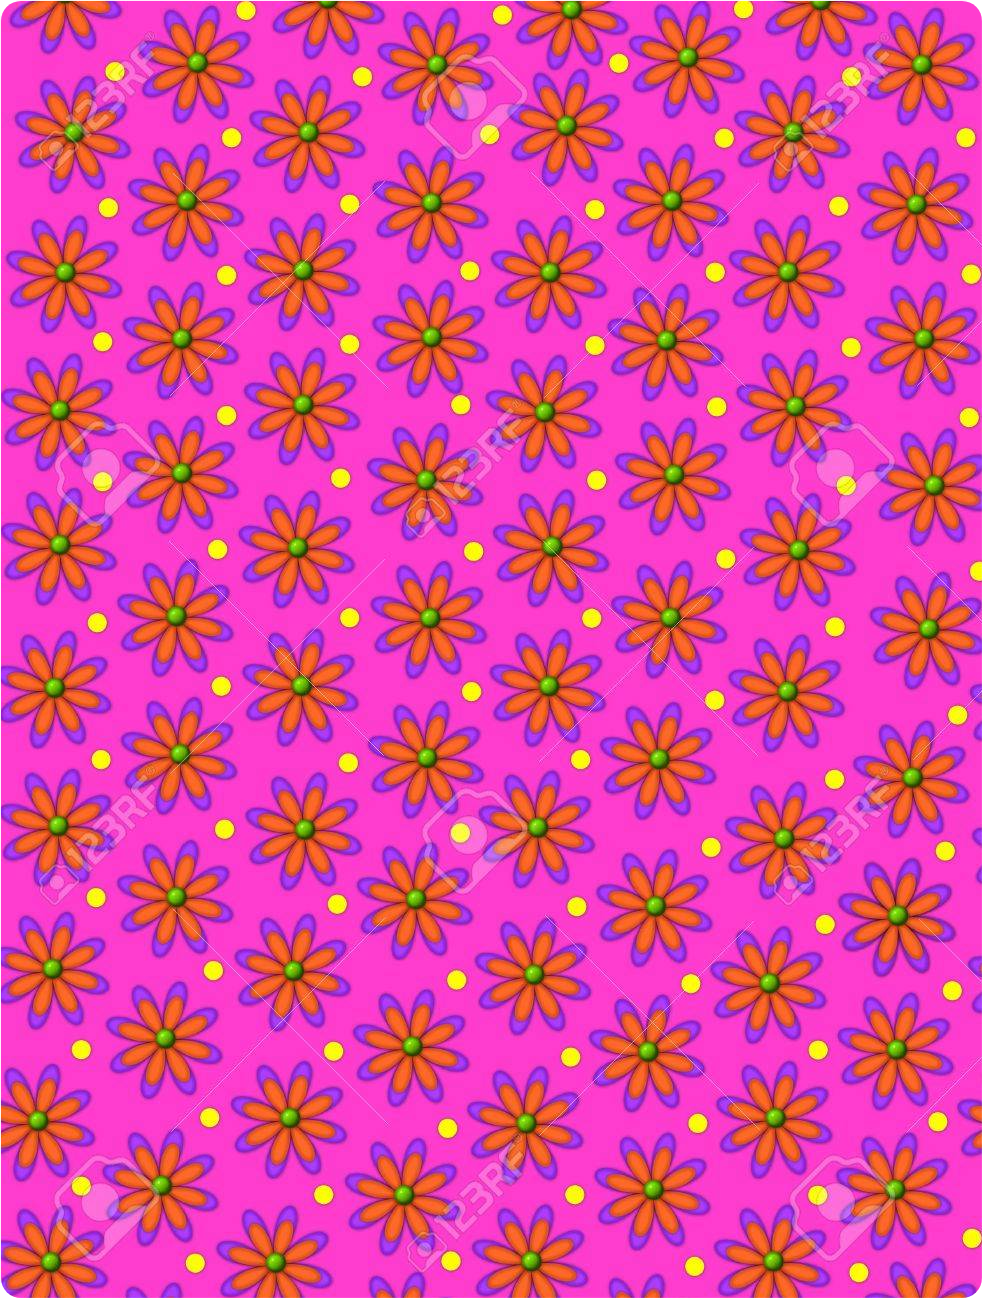 #wallpaper #background #backdrop #stripes #pastel #colorful #pink #green #blue #yellow #orange #red #purple #white #clouds #stars #glitter #hearts #candy #lollipop #icecream #sprinkles #donuts #doughnut #sweet #food #desert #pattern #texture #flowers